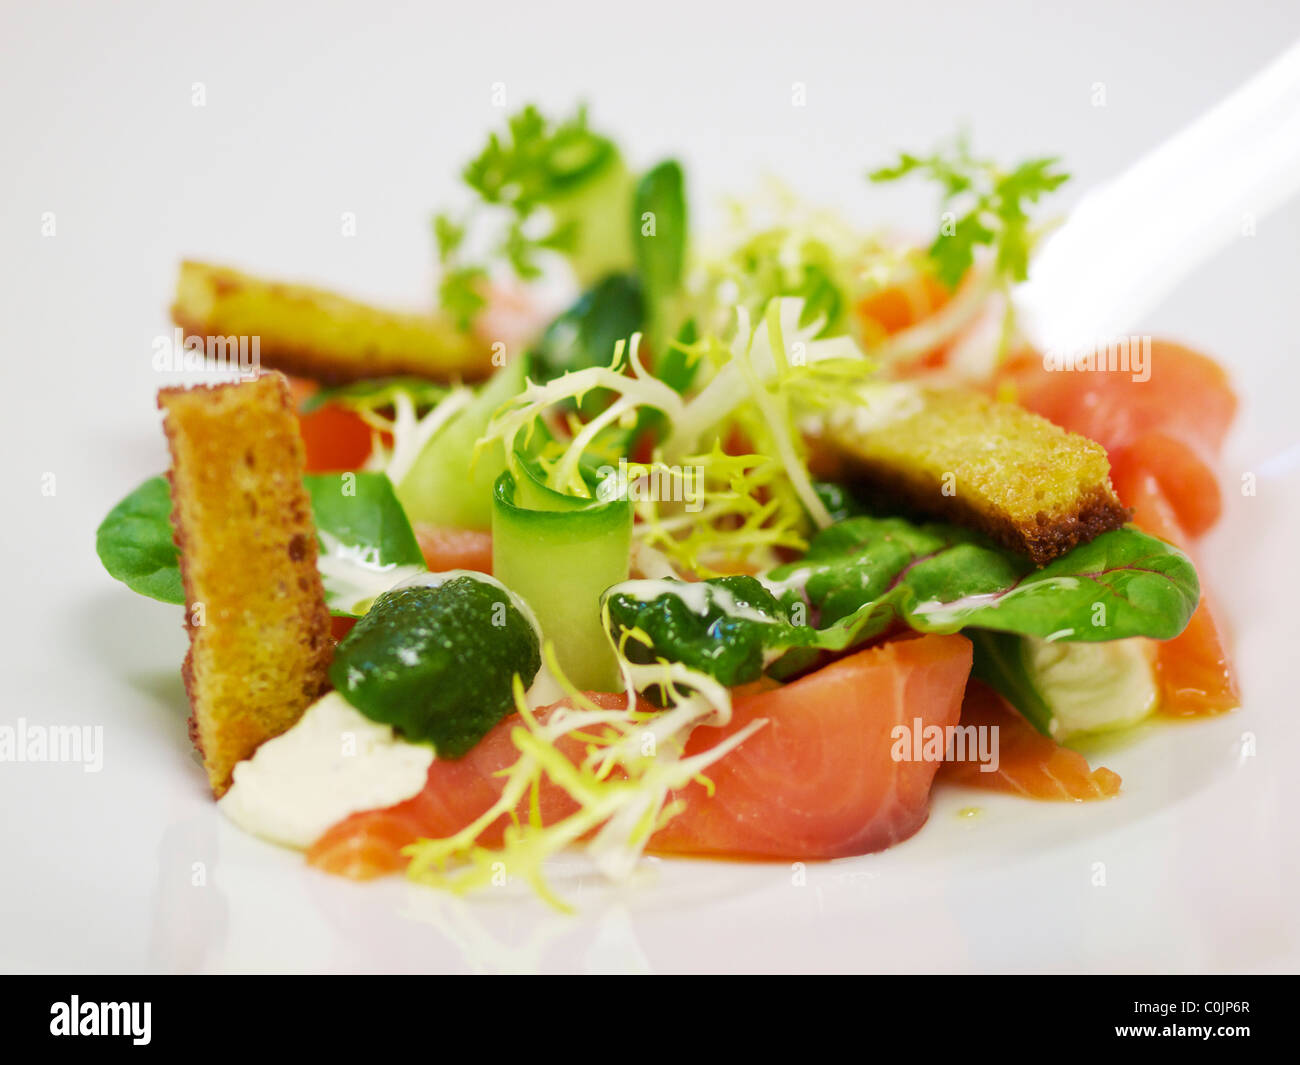 Beautiful lunch dish with smoked salmon close up. - Stock Image